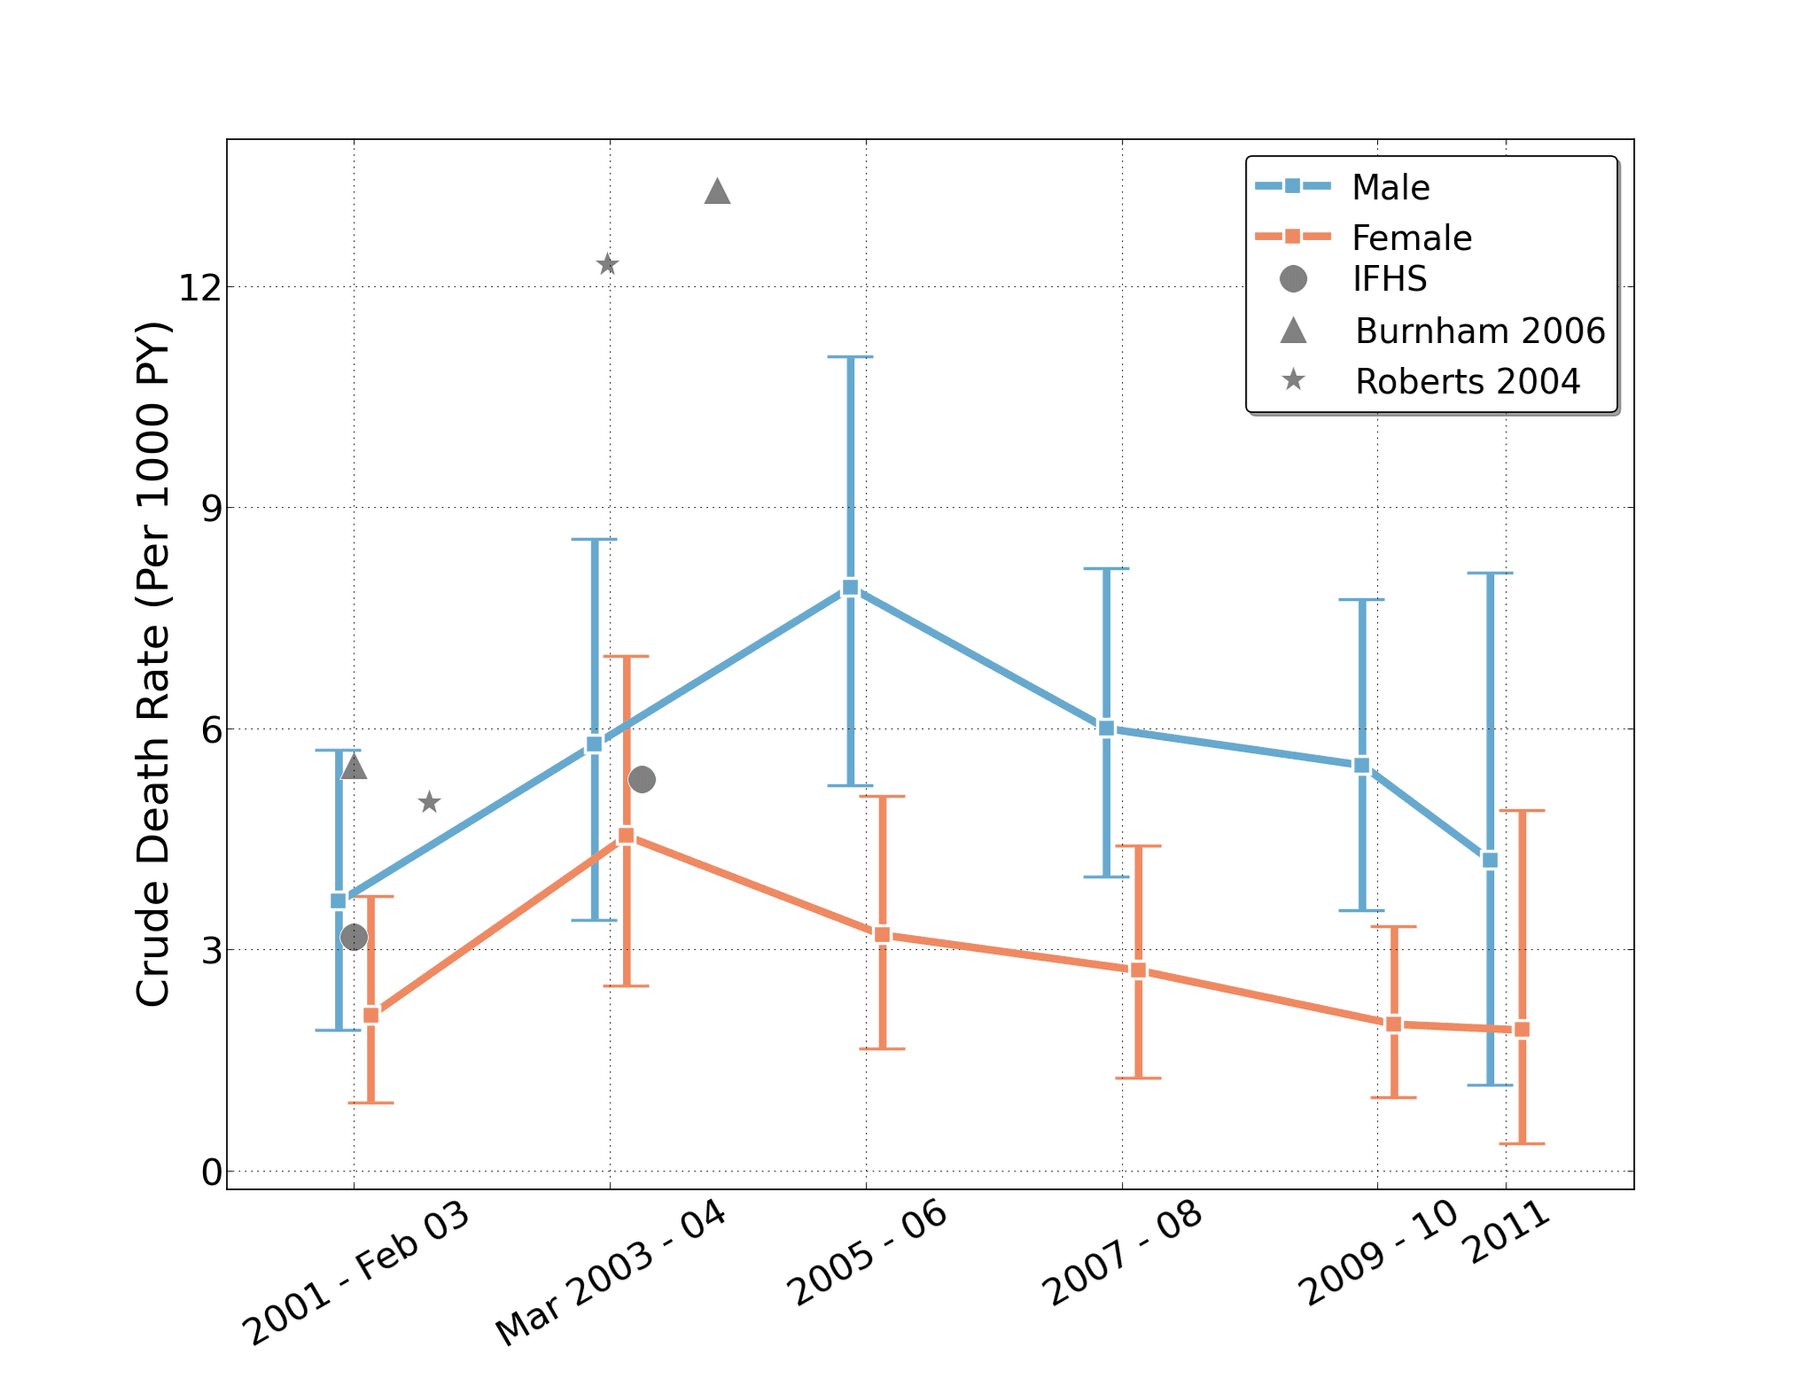 """Amy Hagopian et al., """"Mortality in Iraq Associated with the 2003–2011 War and Occupation: Findings from a National Cluster Sample Survey by the University Collaborative Iraq Mortality Study,"""" PLOS Medicine."""